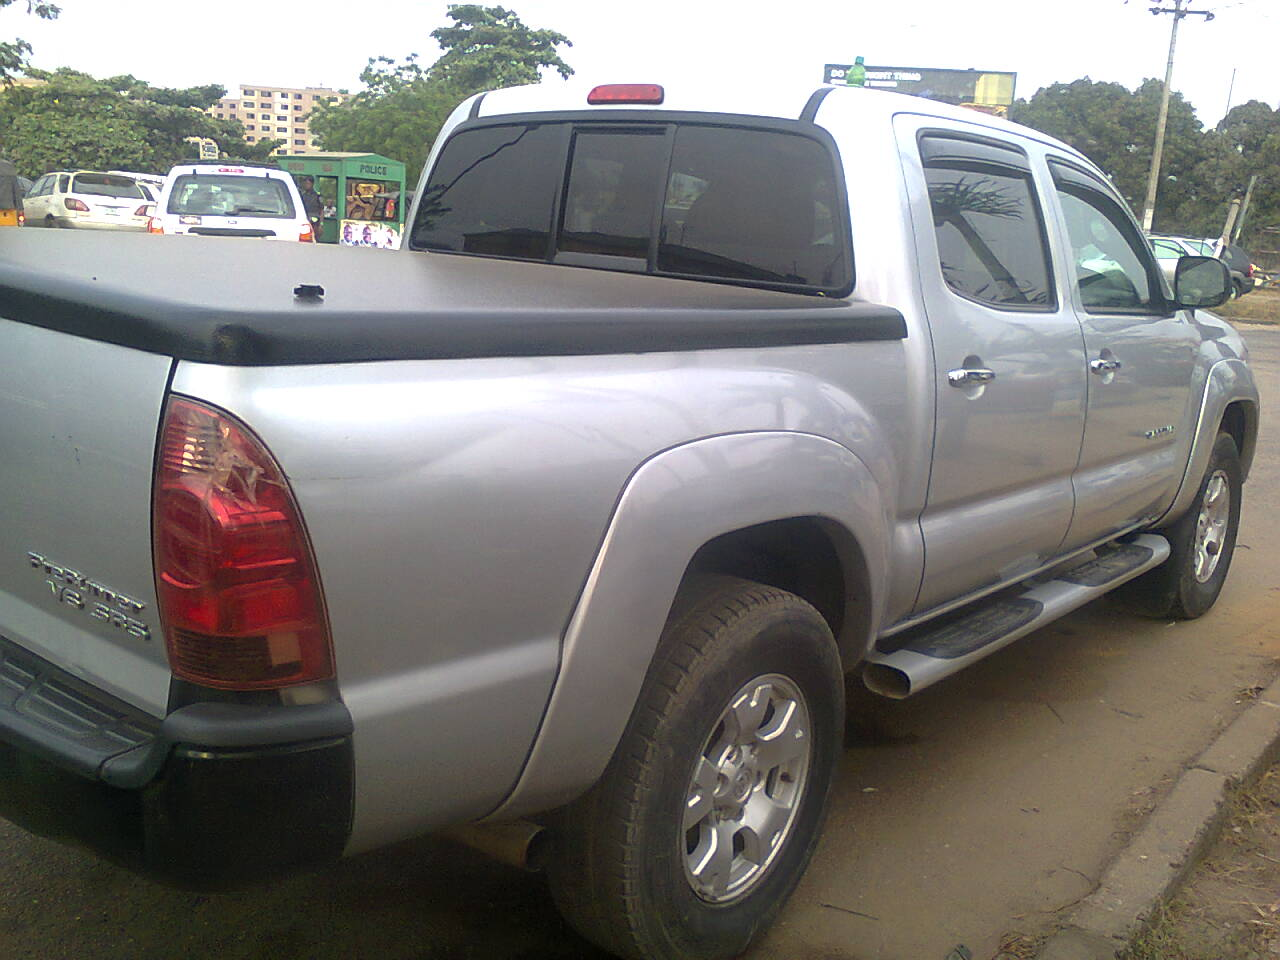 2008 toyota tacoma registered for sale super clean and fresh autos nigeria. Black Bedroom Furniture Sets. Home Design Ideas